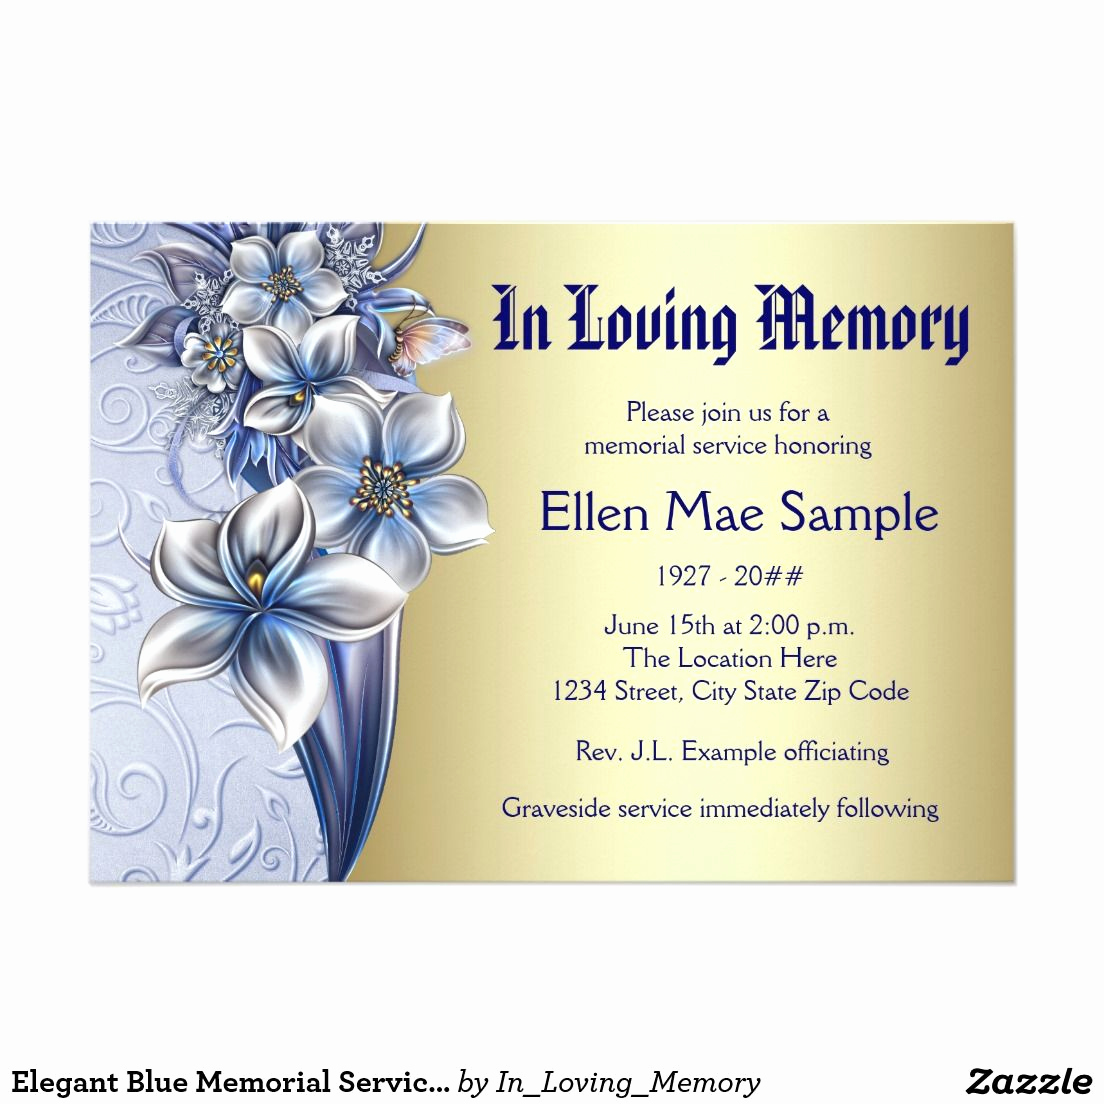 Memorial Service Invitation Template Free Elegant Elegant Blue Memorial Service Announcements